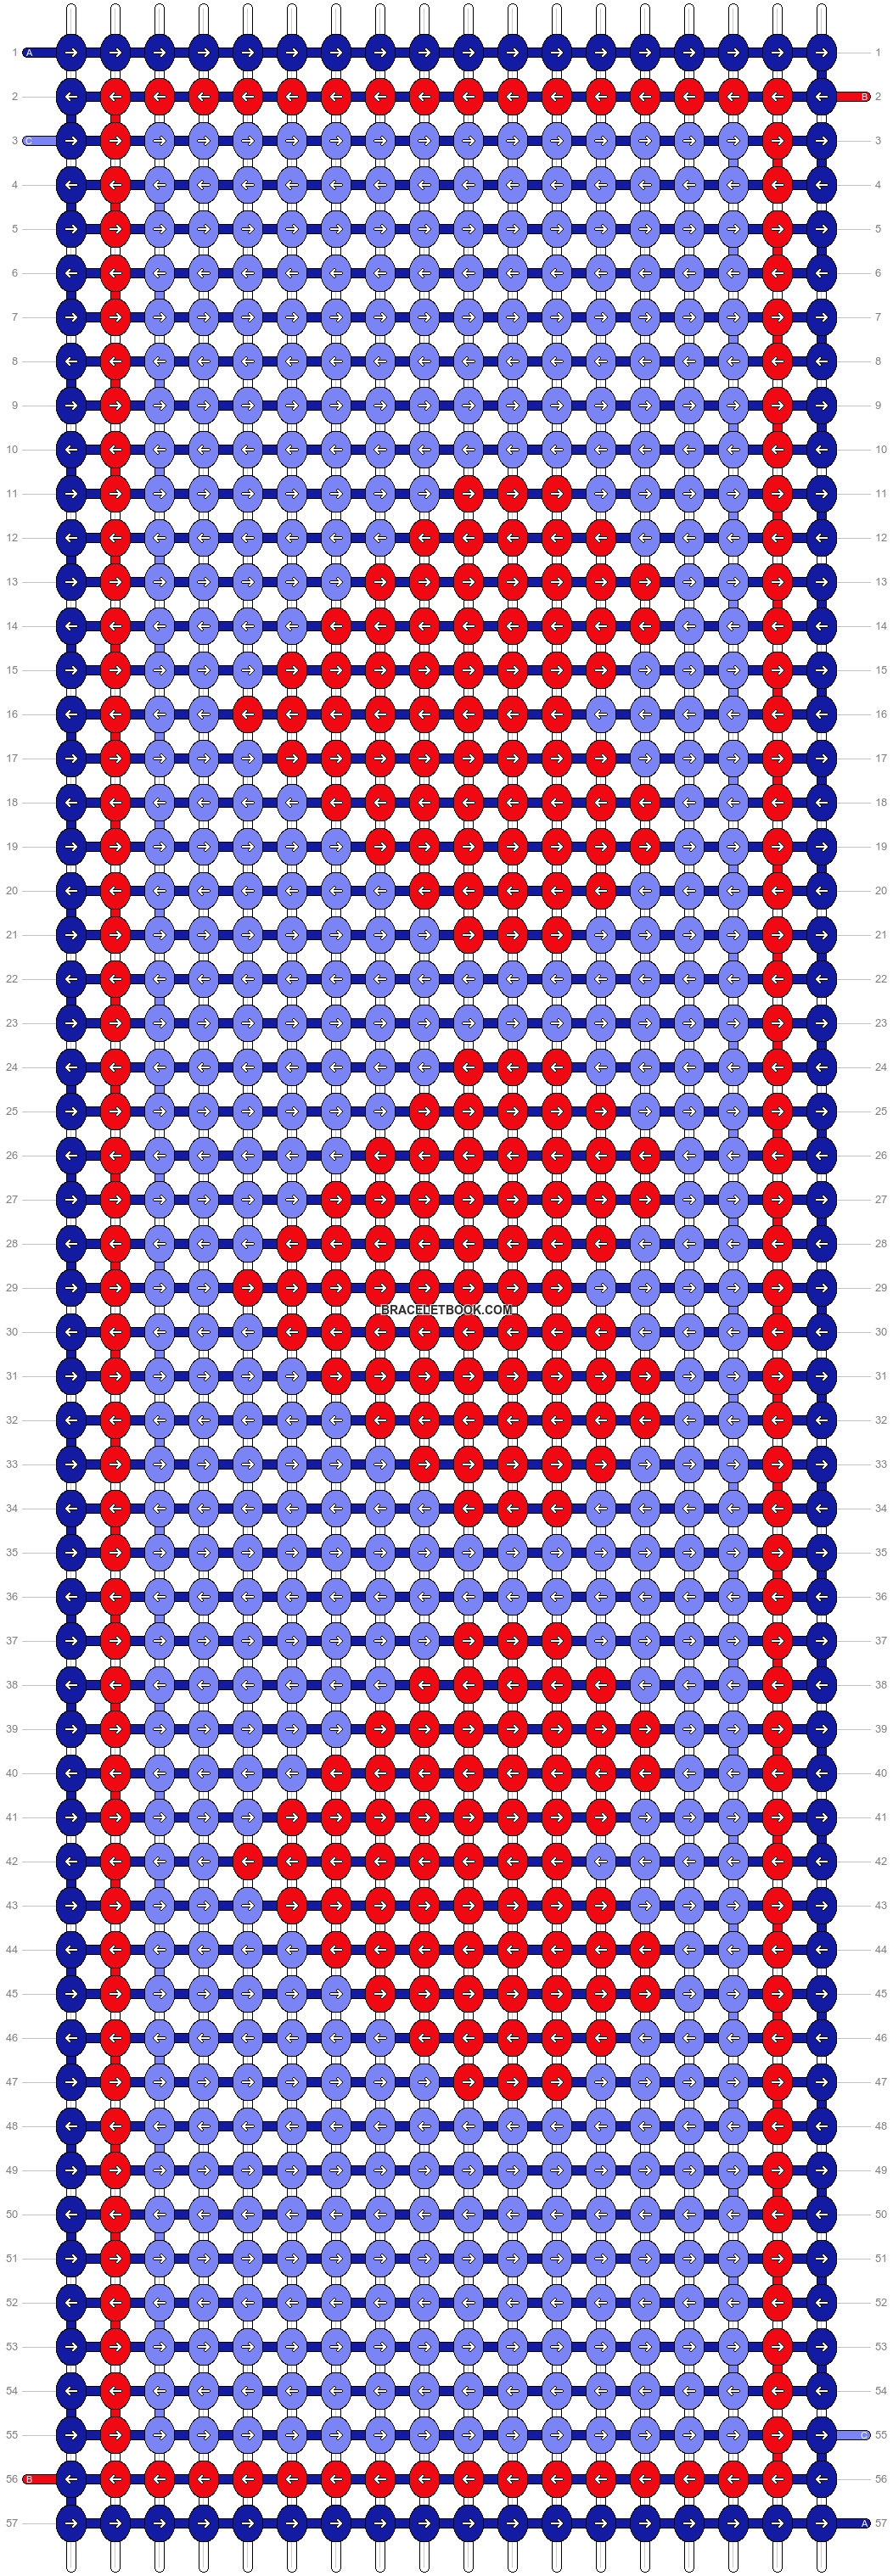 Alpha Pattern #22069 added by rlinster22